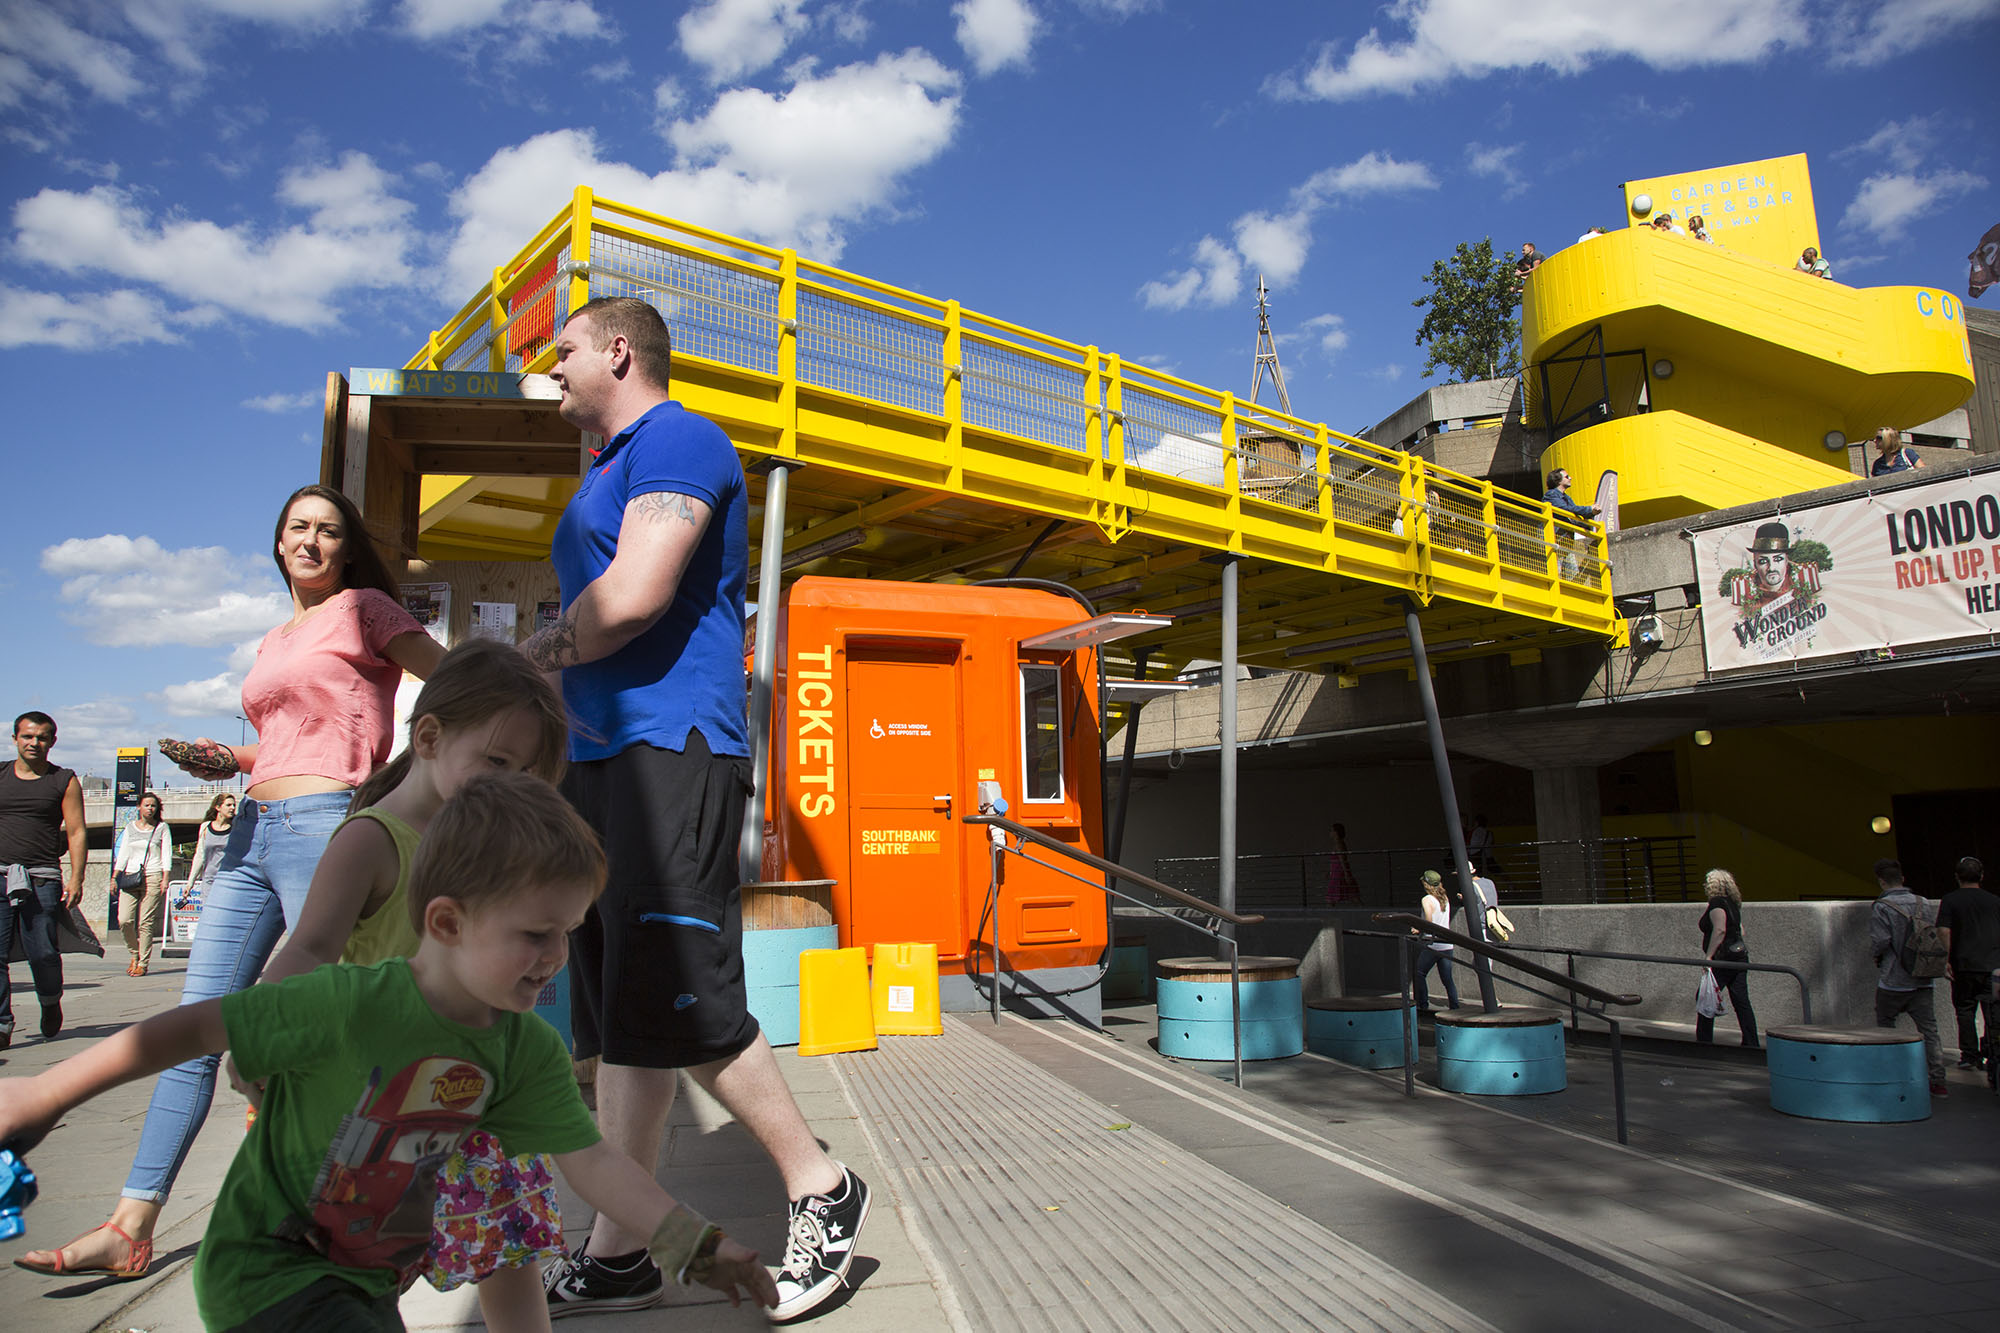 Kids playing near the yellow gantry walkway which joins a terrace to the main walkway on the South Bank.